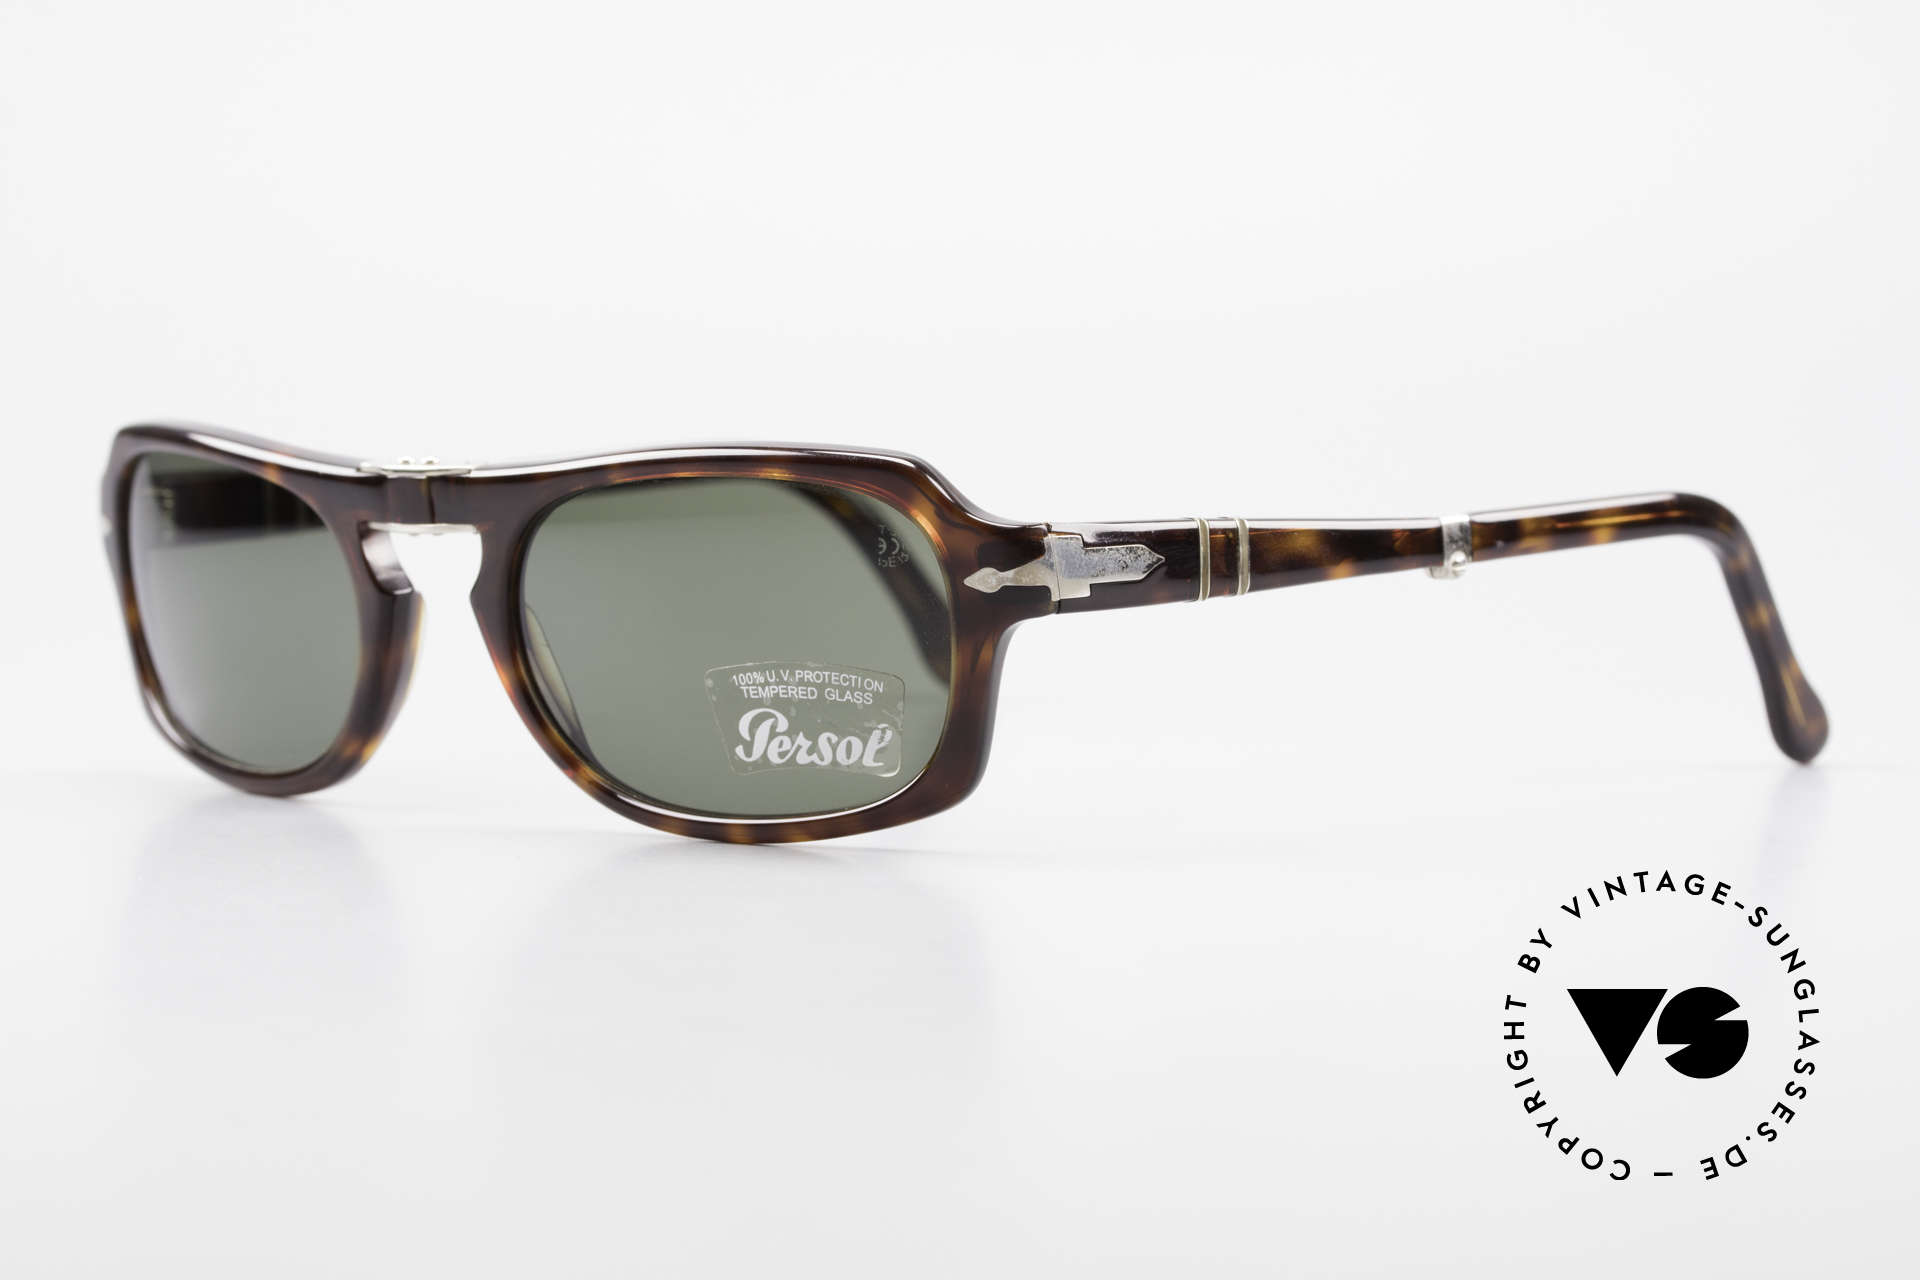 Persol 2621 Folding Foldable Sunglasses For Men, Steve McQueen made Persol RATTI models world-famous, Made for Men